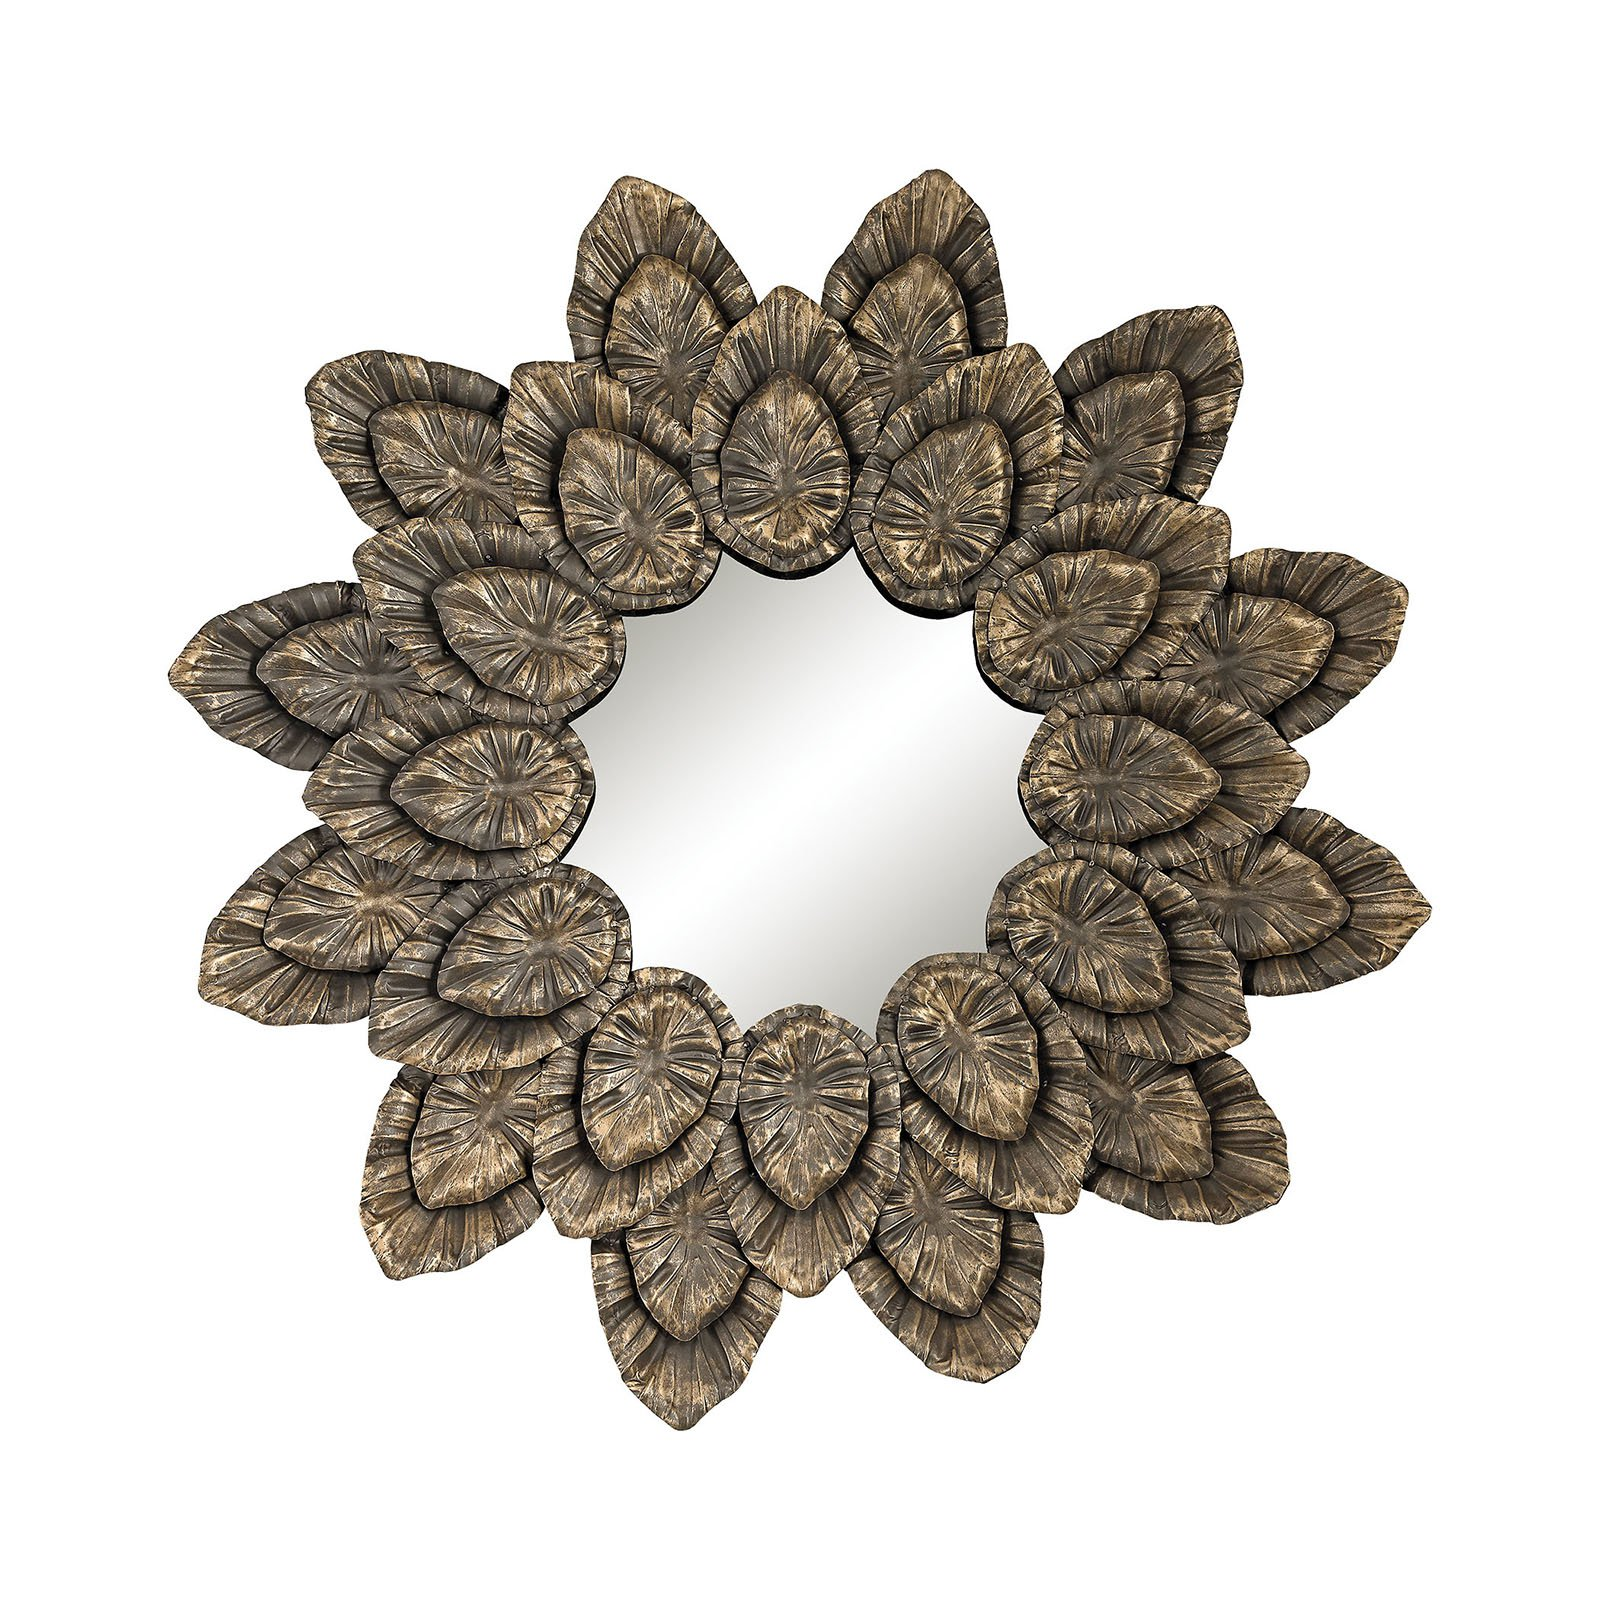 Dimond Home Metallic Petal Surround Wall Mirror - 42 diam. in.